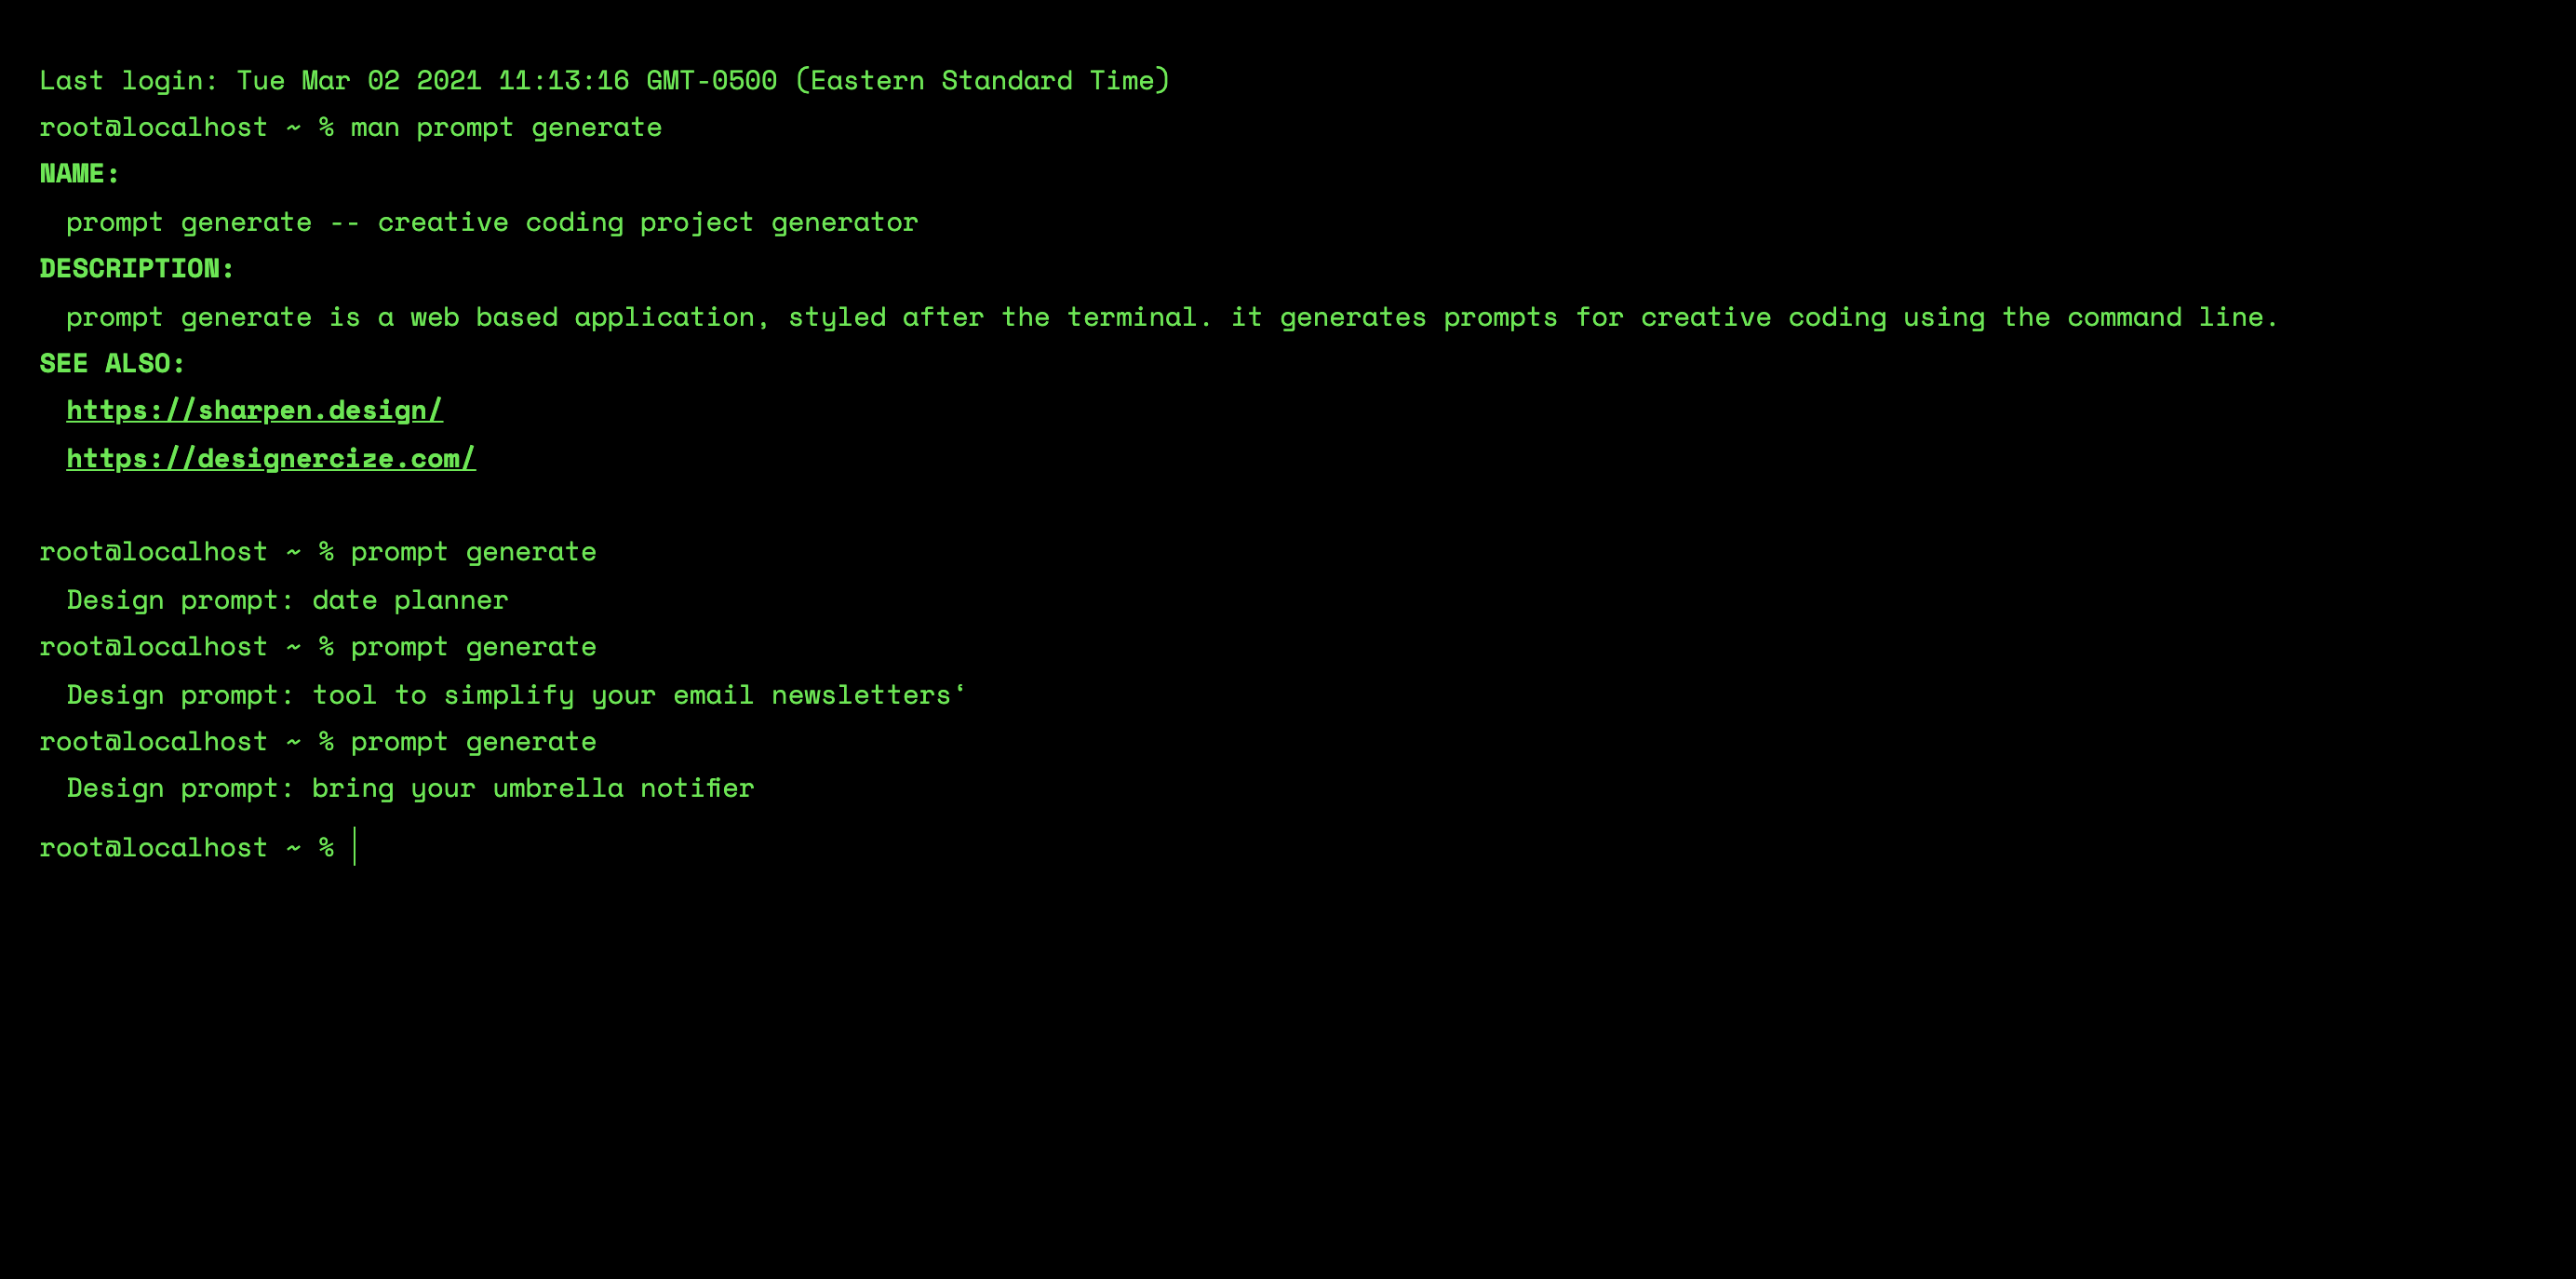 Screenshot of the Prompt generator, with the text prompt generate at the bottom and several prompt ideas listed out, including bring an umbrella notifier